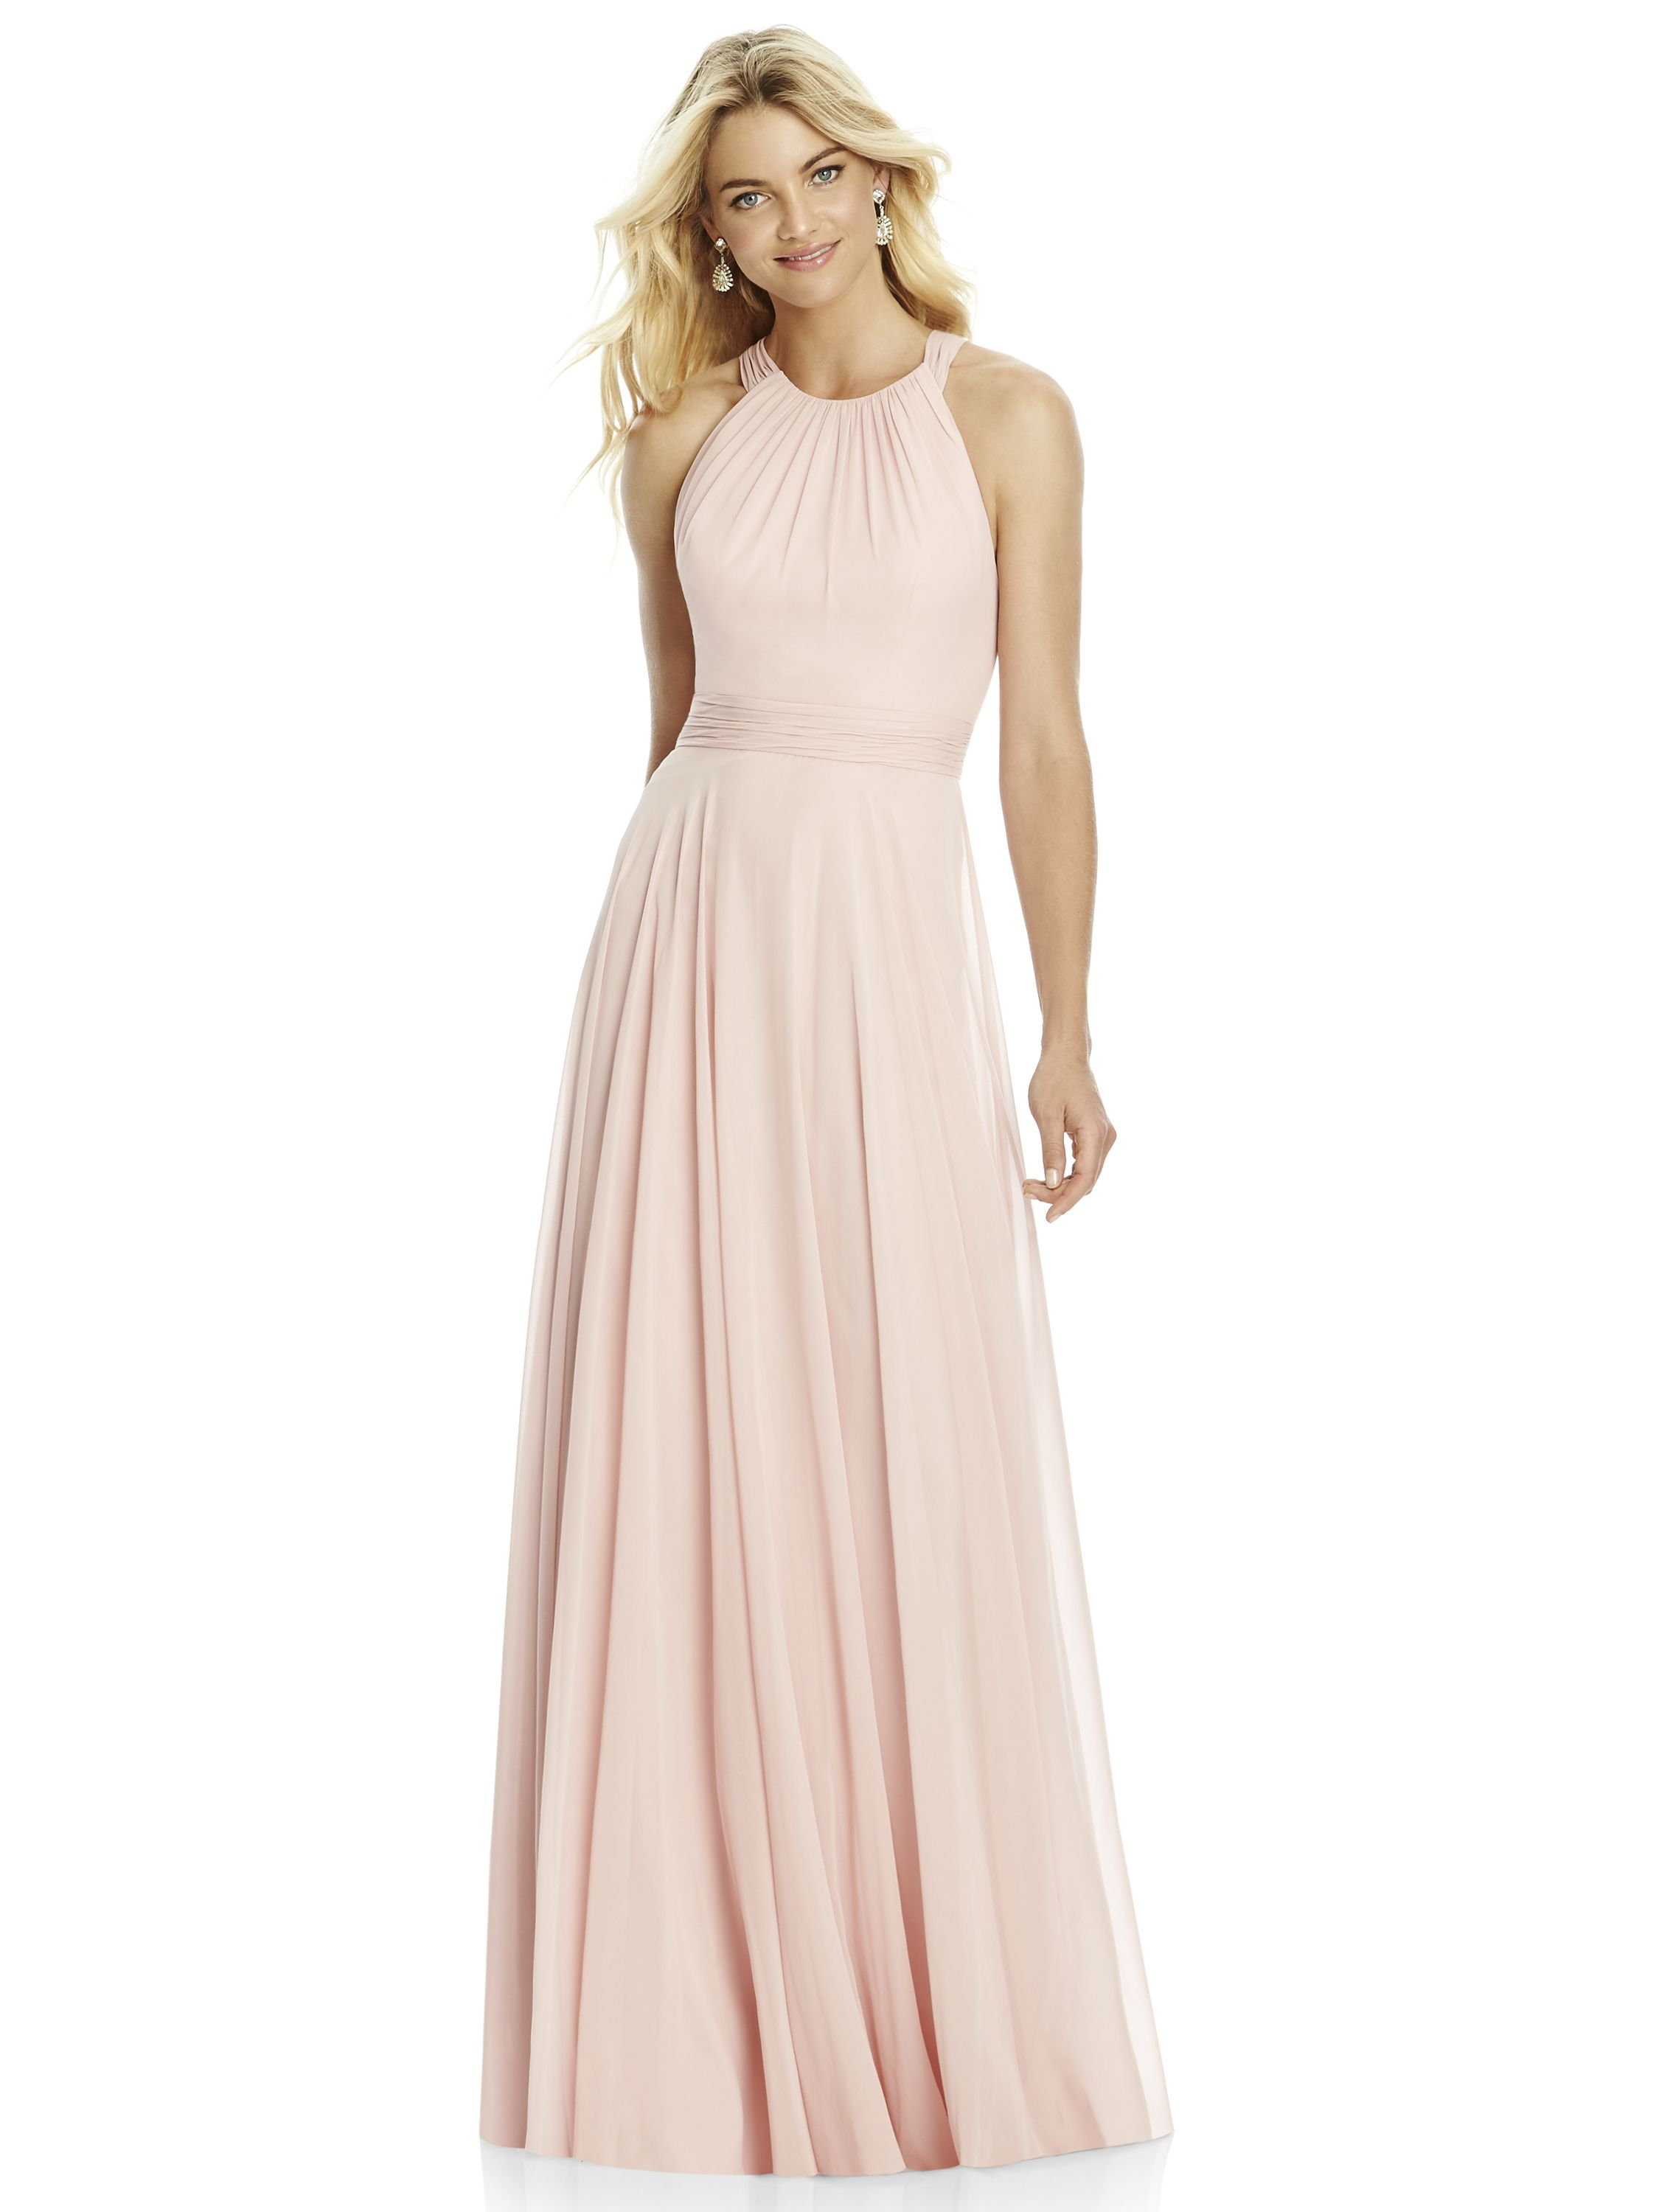 Dessy bridesmaid dress style 6760 goin to the chapel pinterest dessy bridesmaid dress style 6760 ombrellifo Image collections